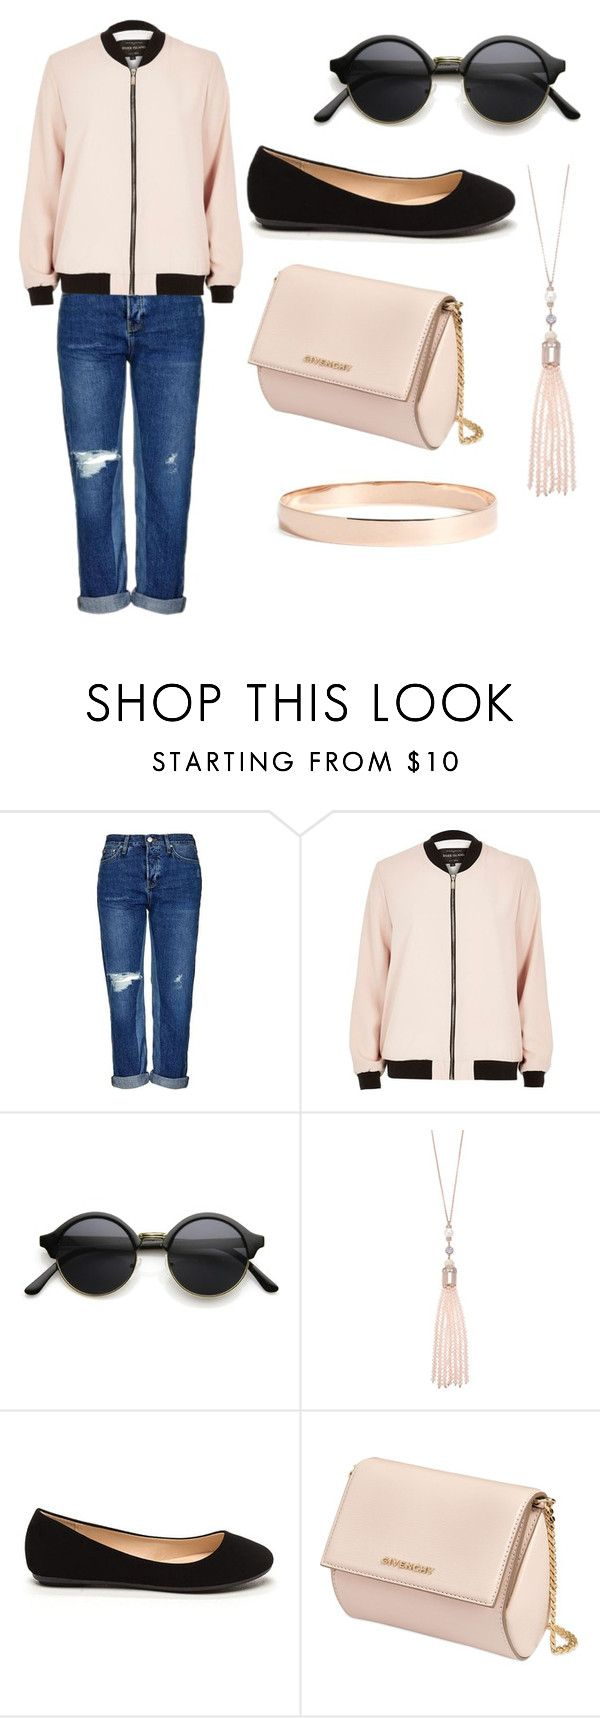 """""""Untitled #105"""" by tiger123456789 ❤ liked on Polyvore featuring Topshop, River Island, Oasis, Givenchy and Lana Jewelry"""